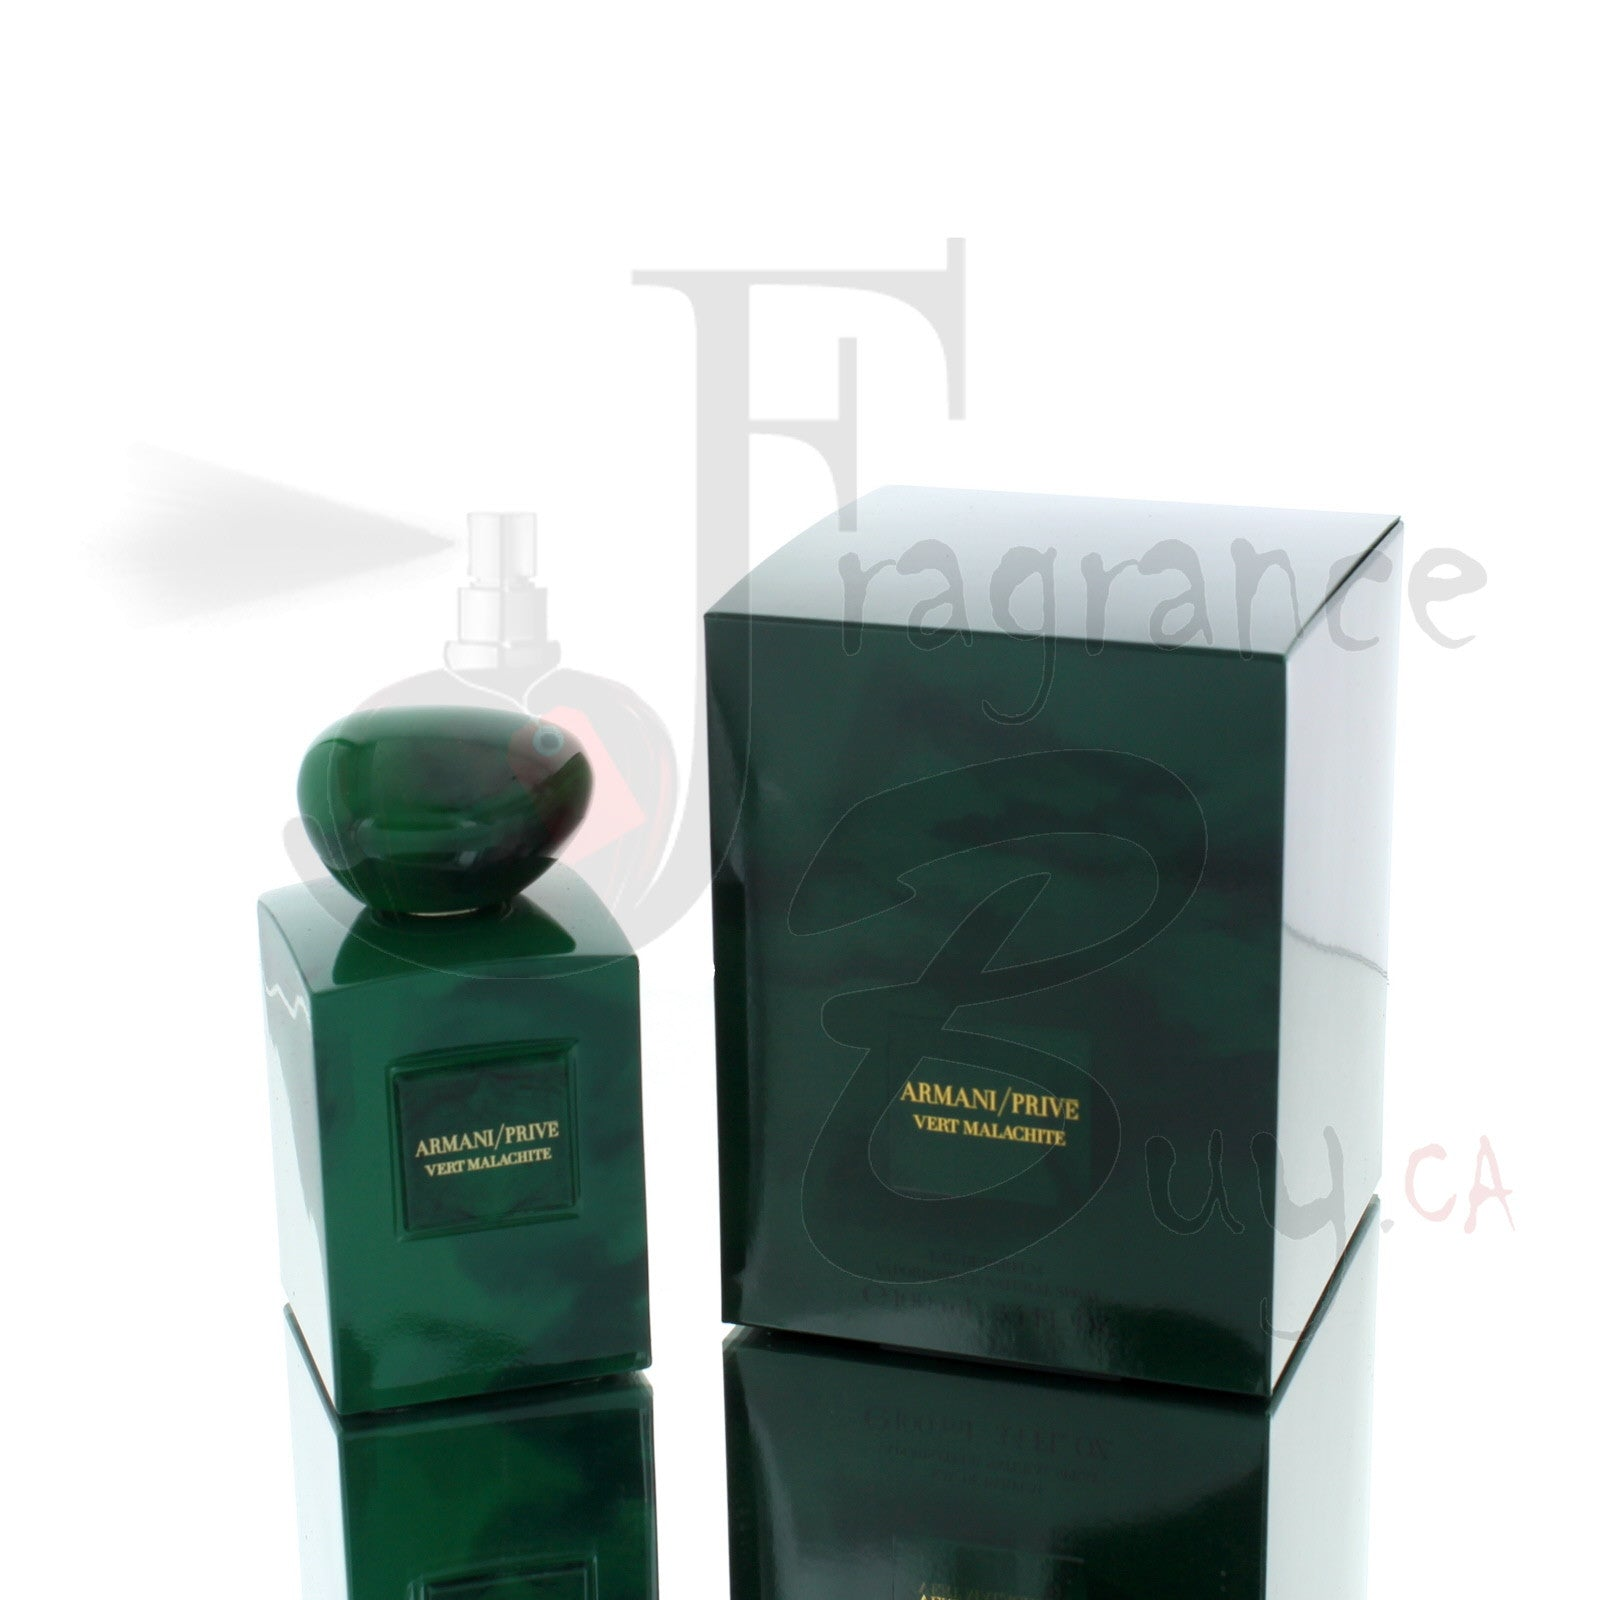 Giorgio Armani Prive Vert Malachite For Man